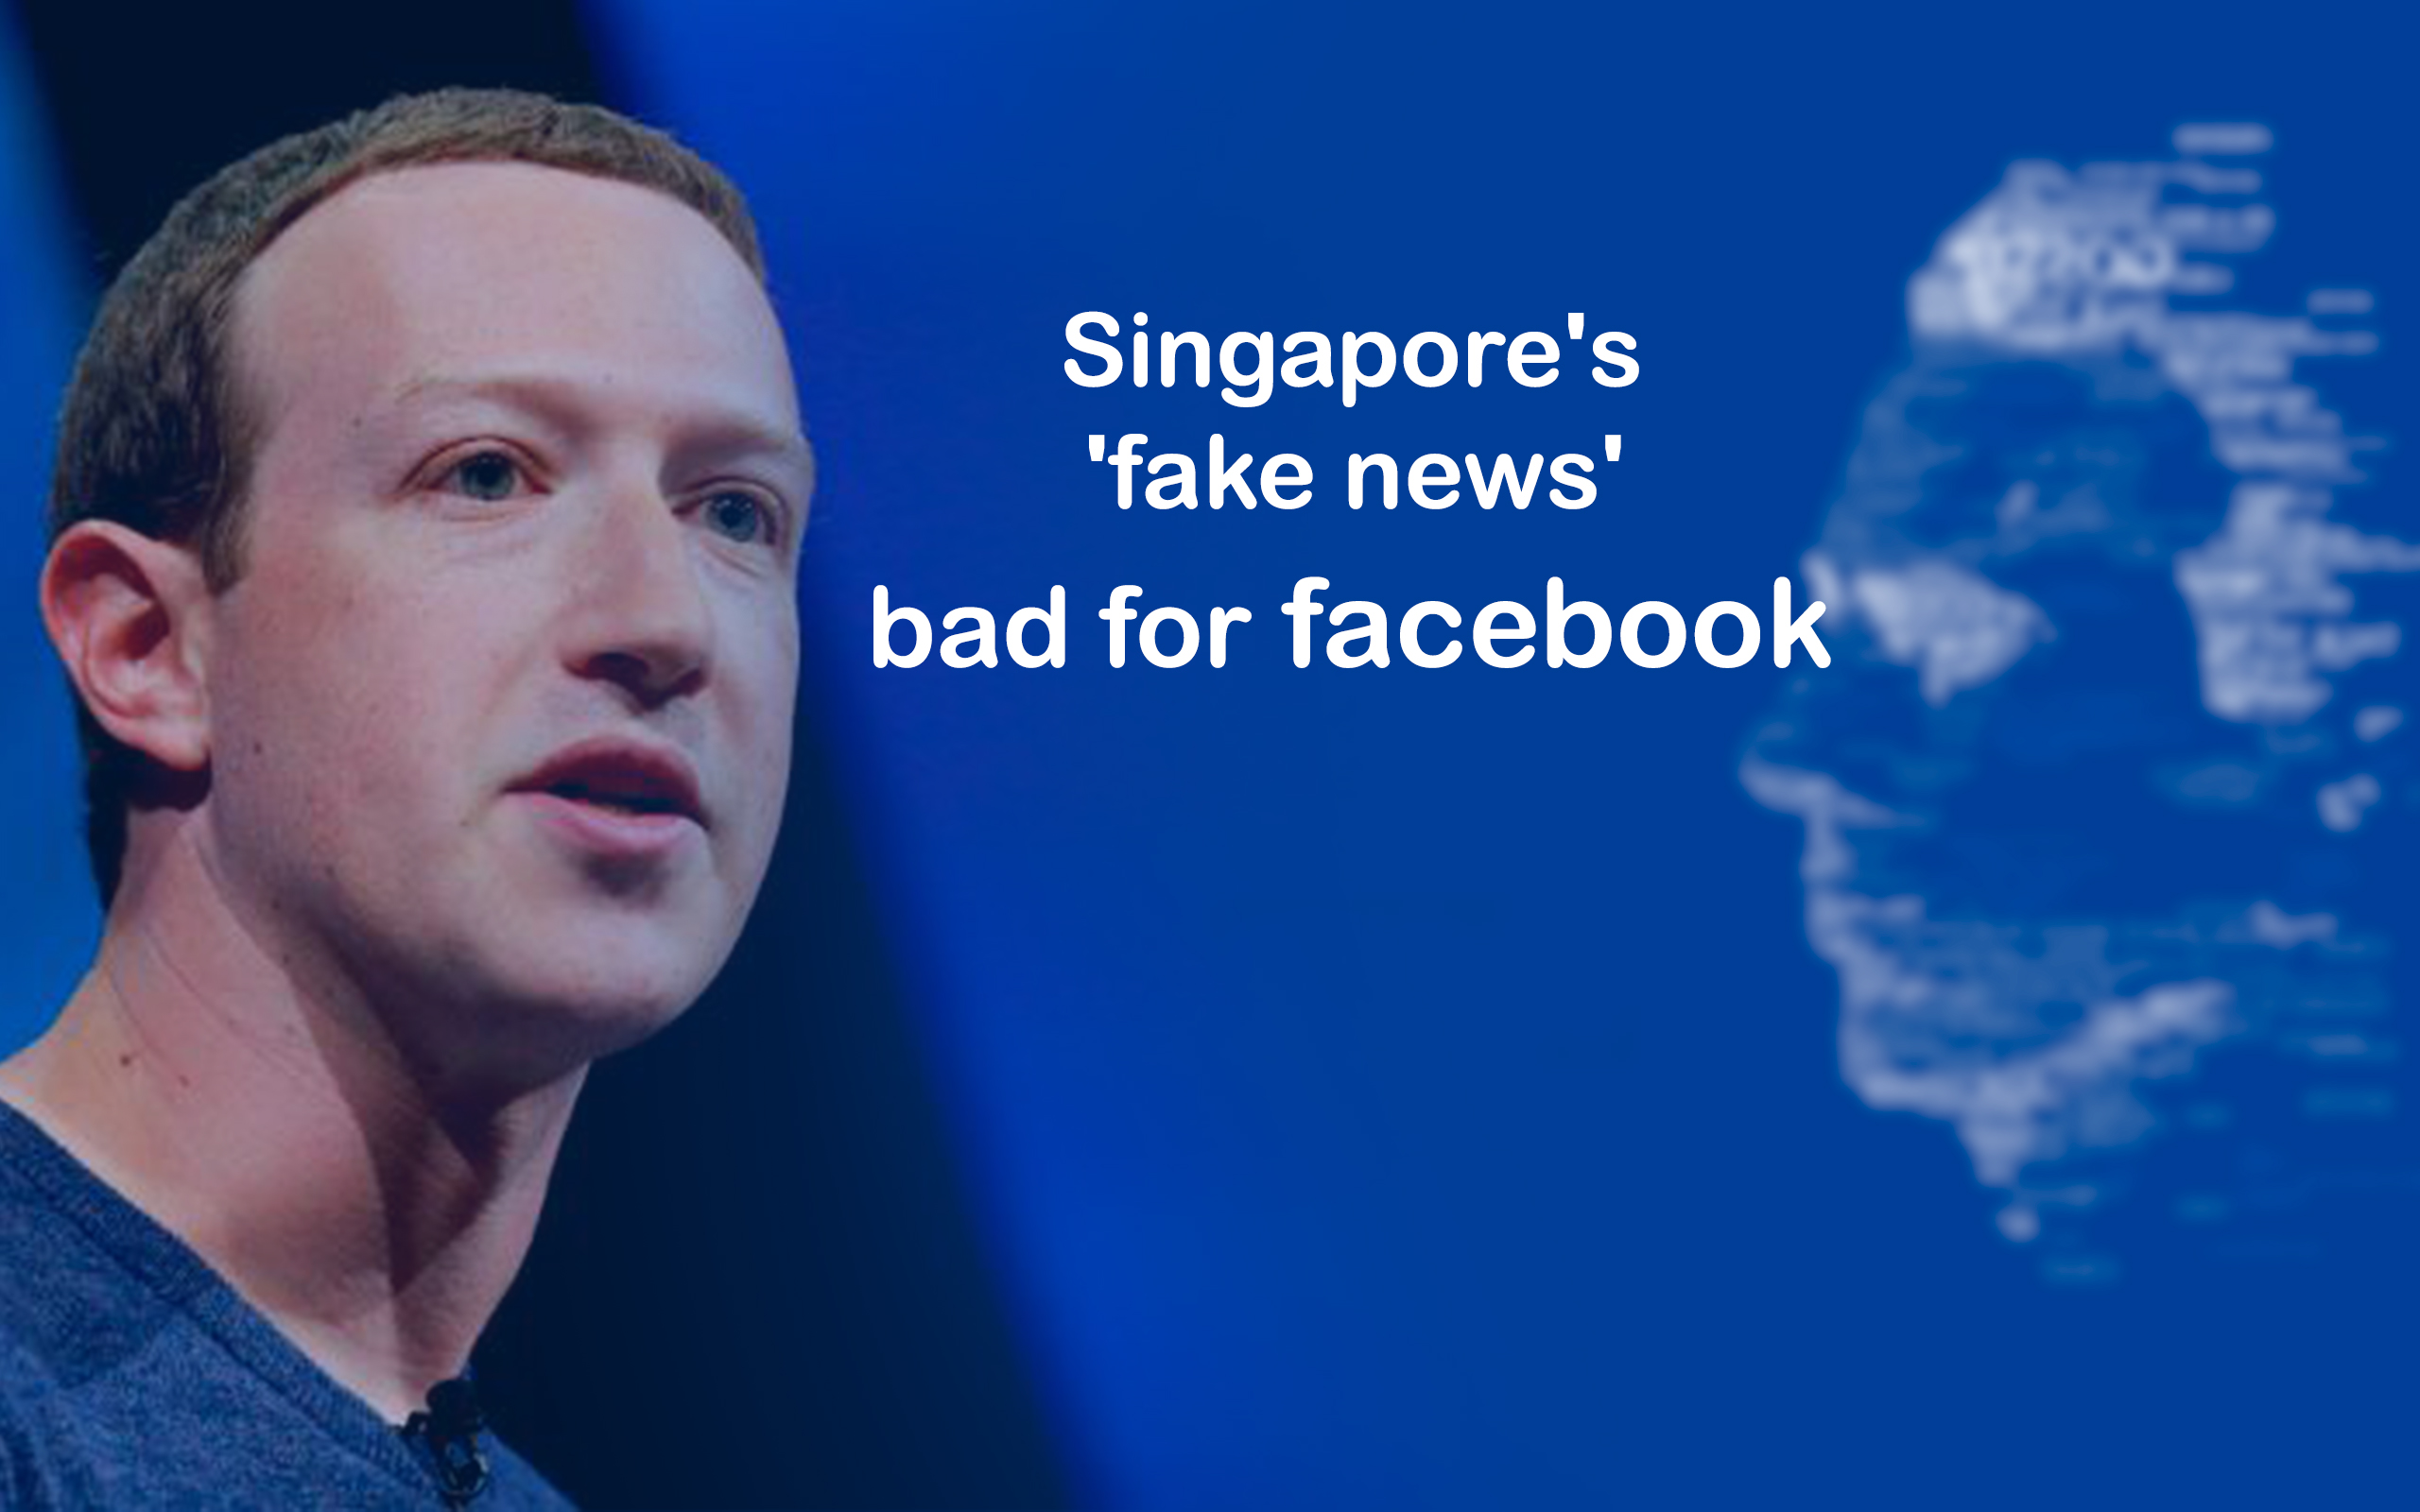 'Fake News' Bill of Singapore Let Down Mark Zuckerberg